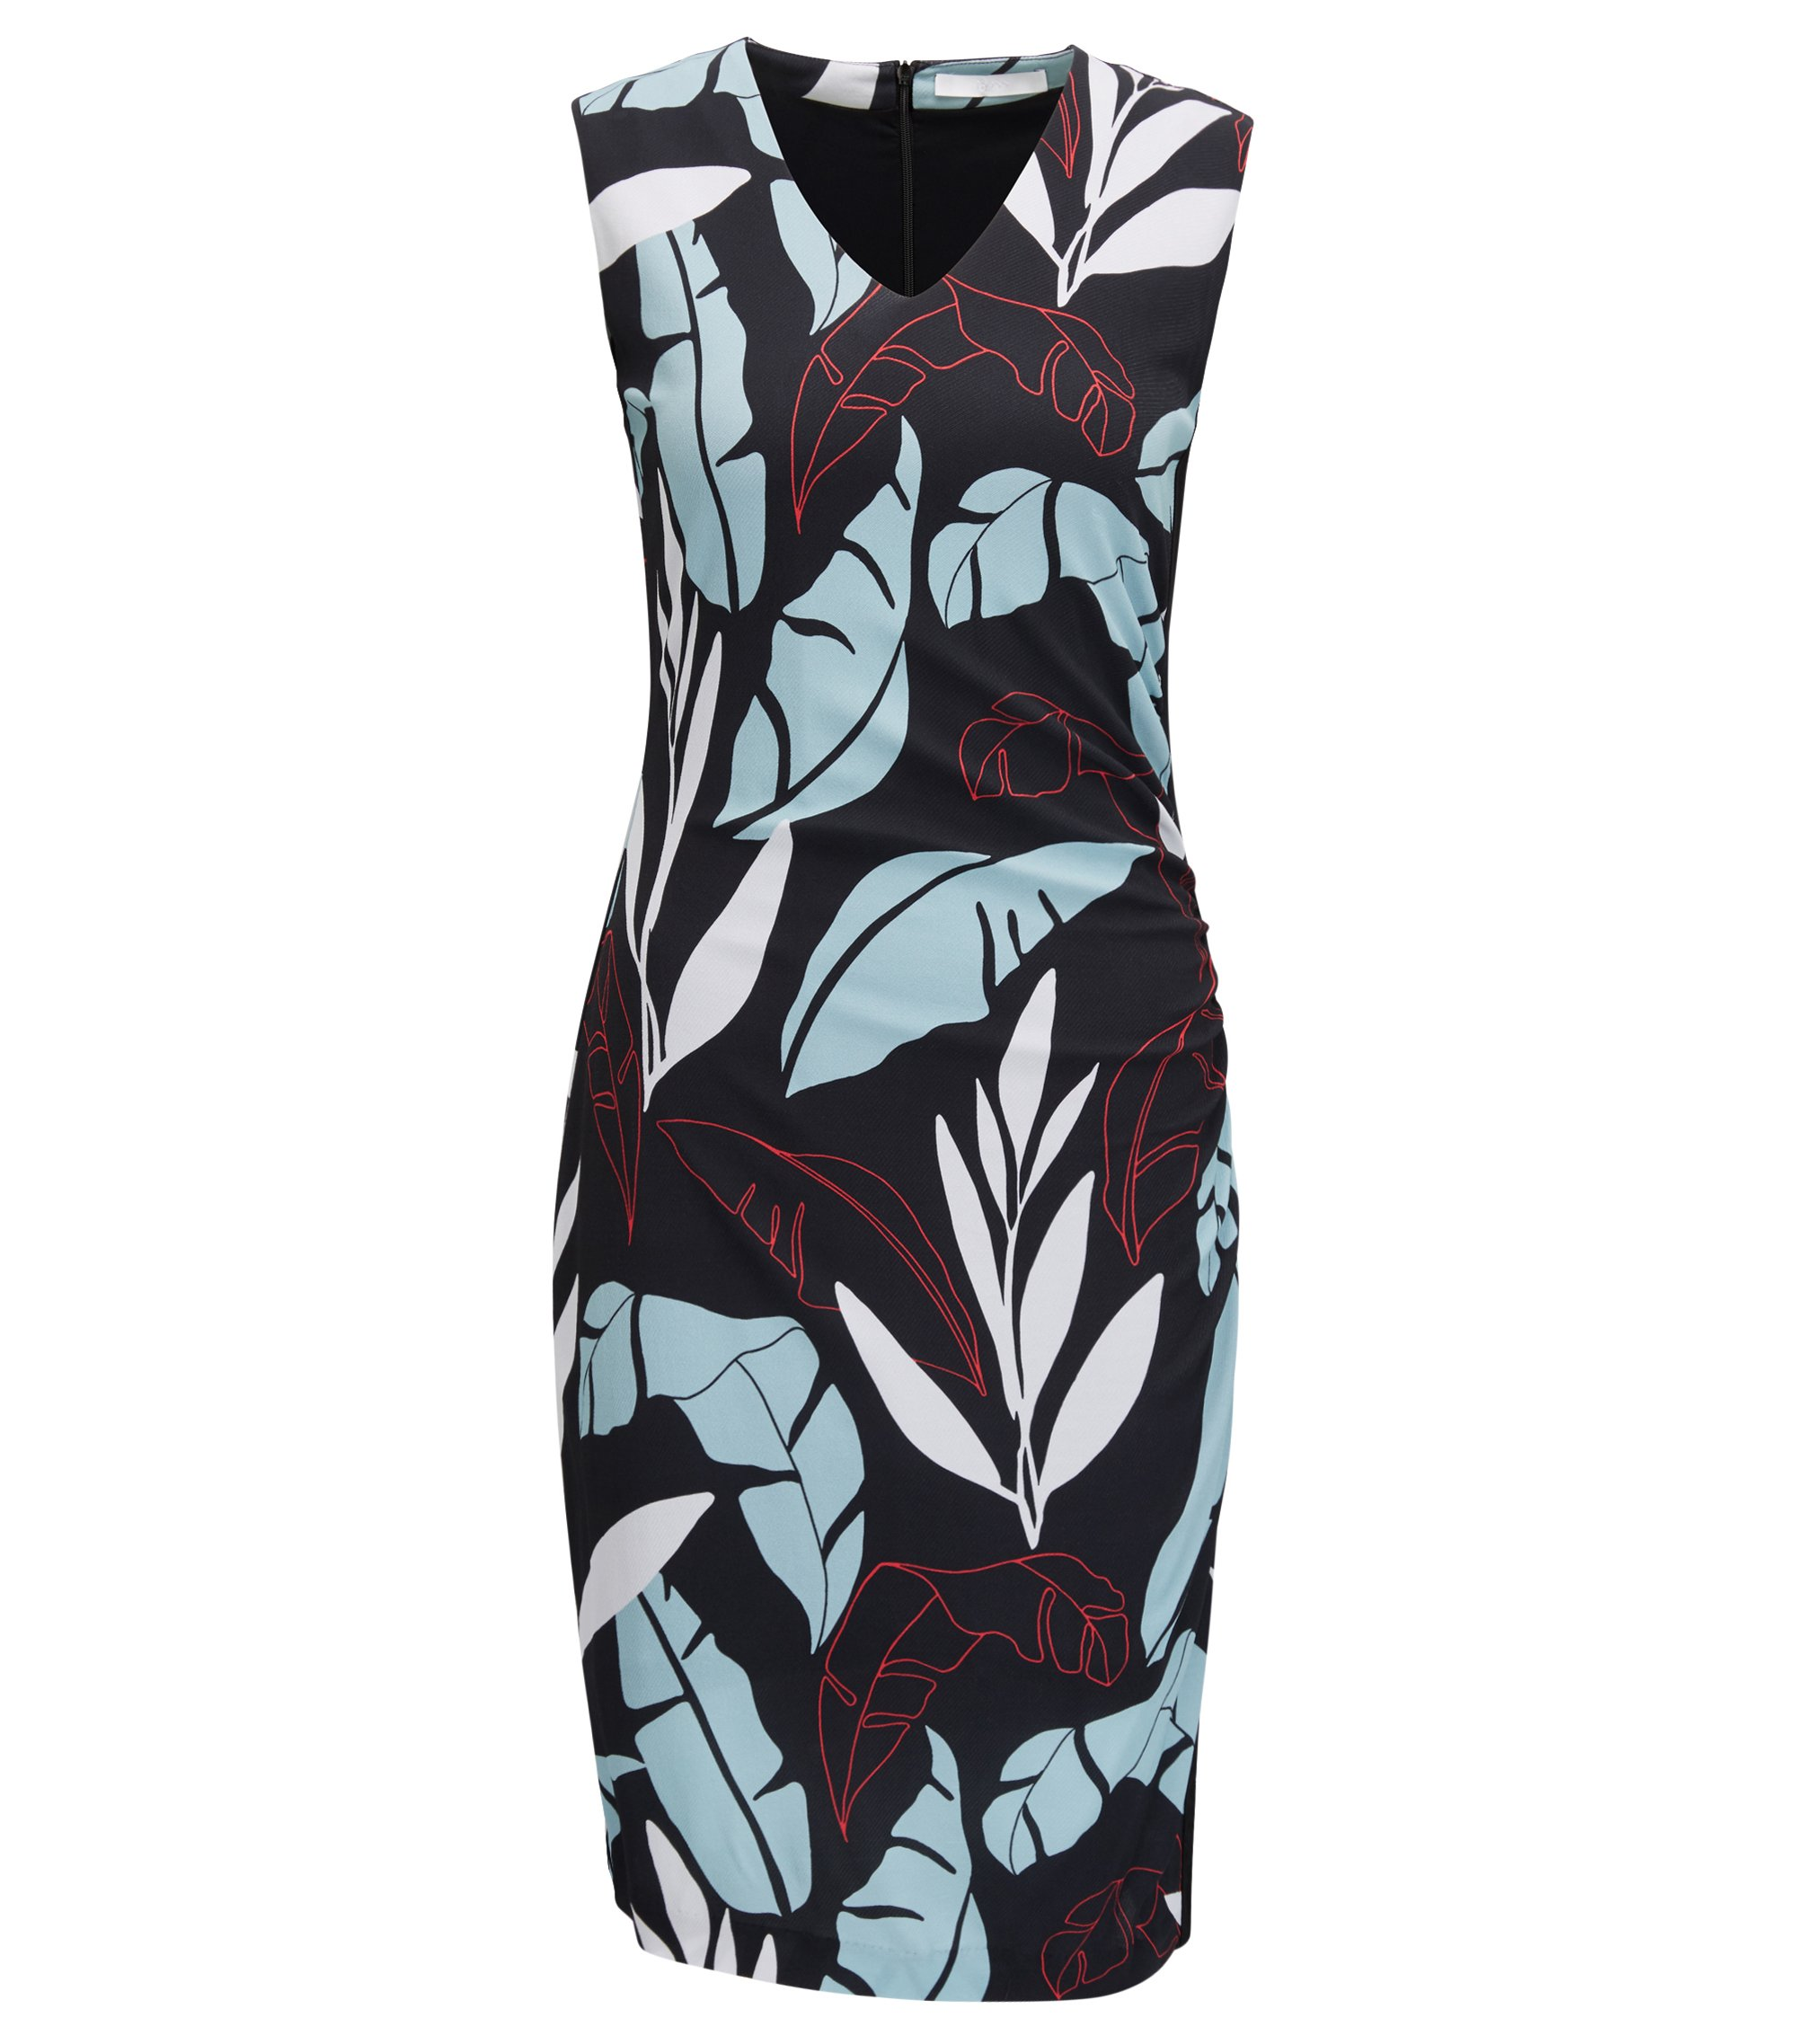 Leaf-Print Ruched Sheath Dress | Erela, Patterned